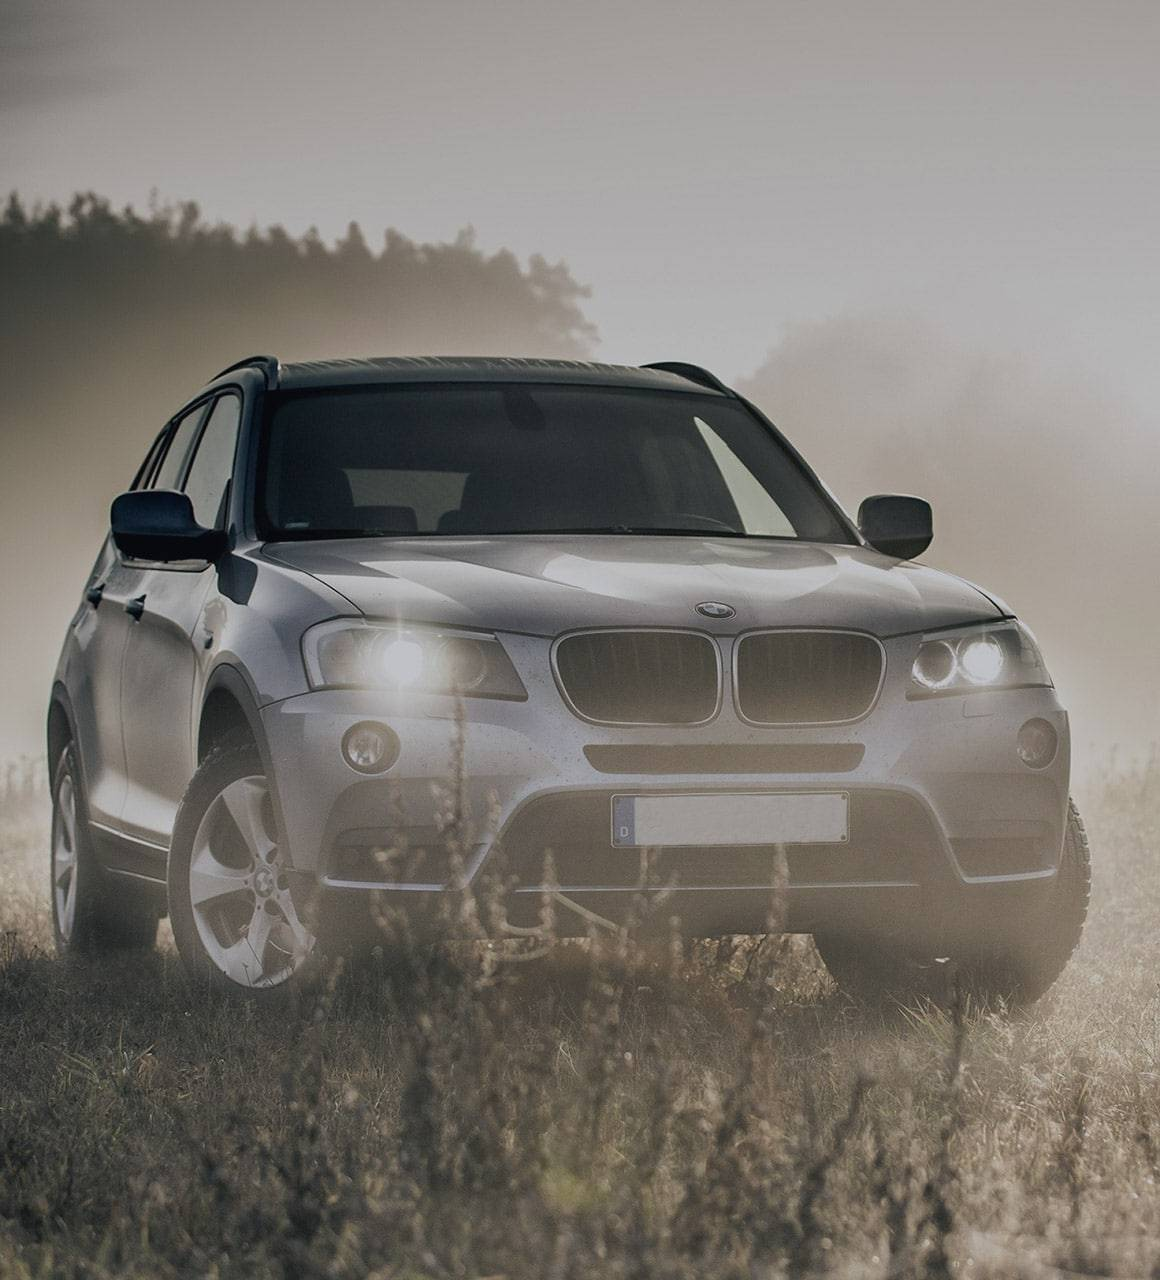 Compare BMW insurance costs for all models